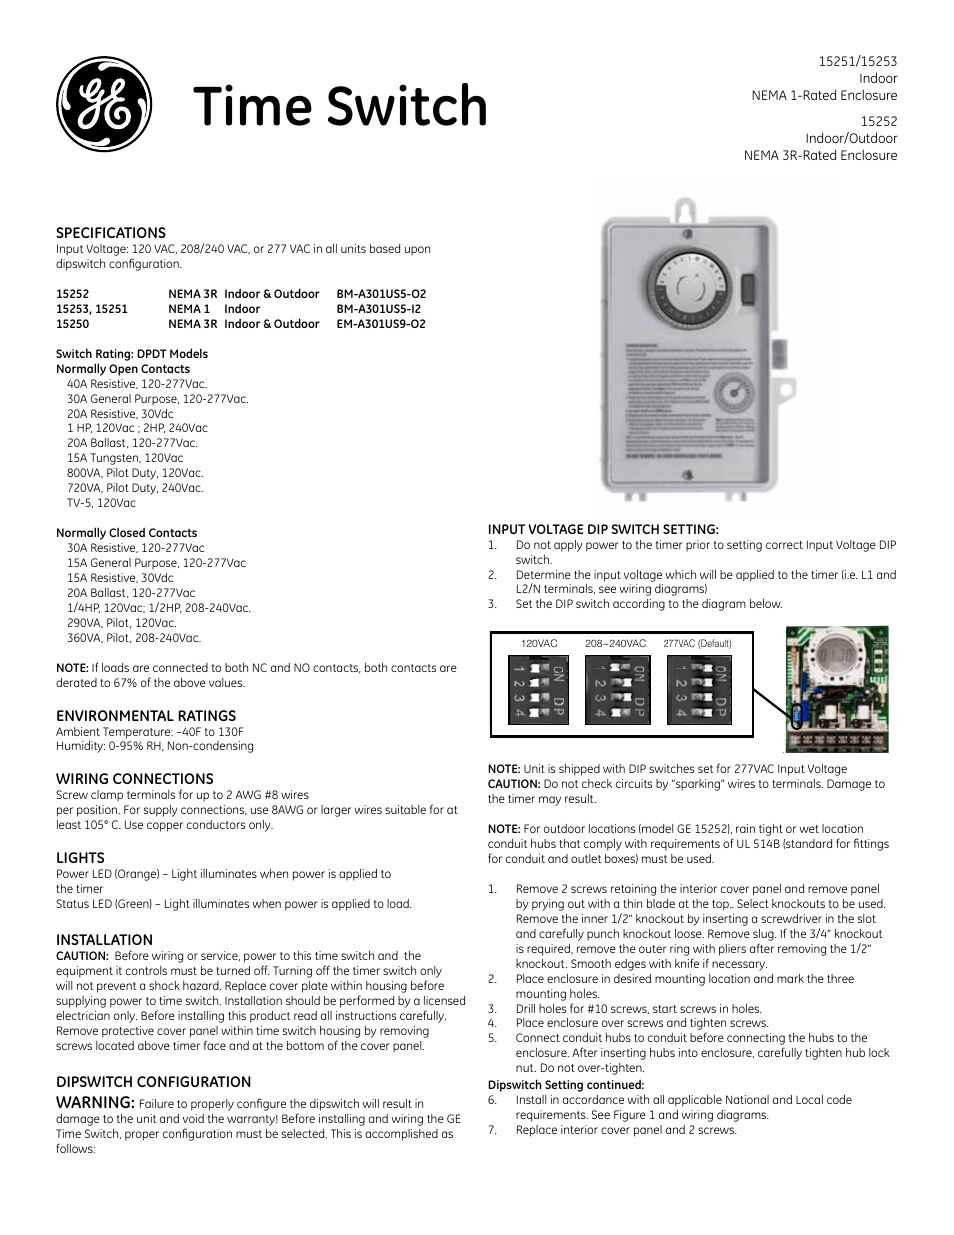 Tork Time Switch Model 1104 Wiring Diagram : 42 Wiring